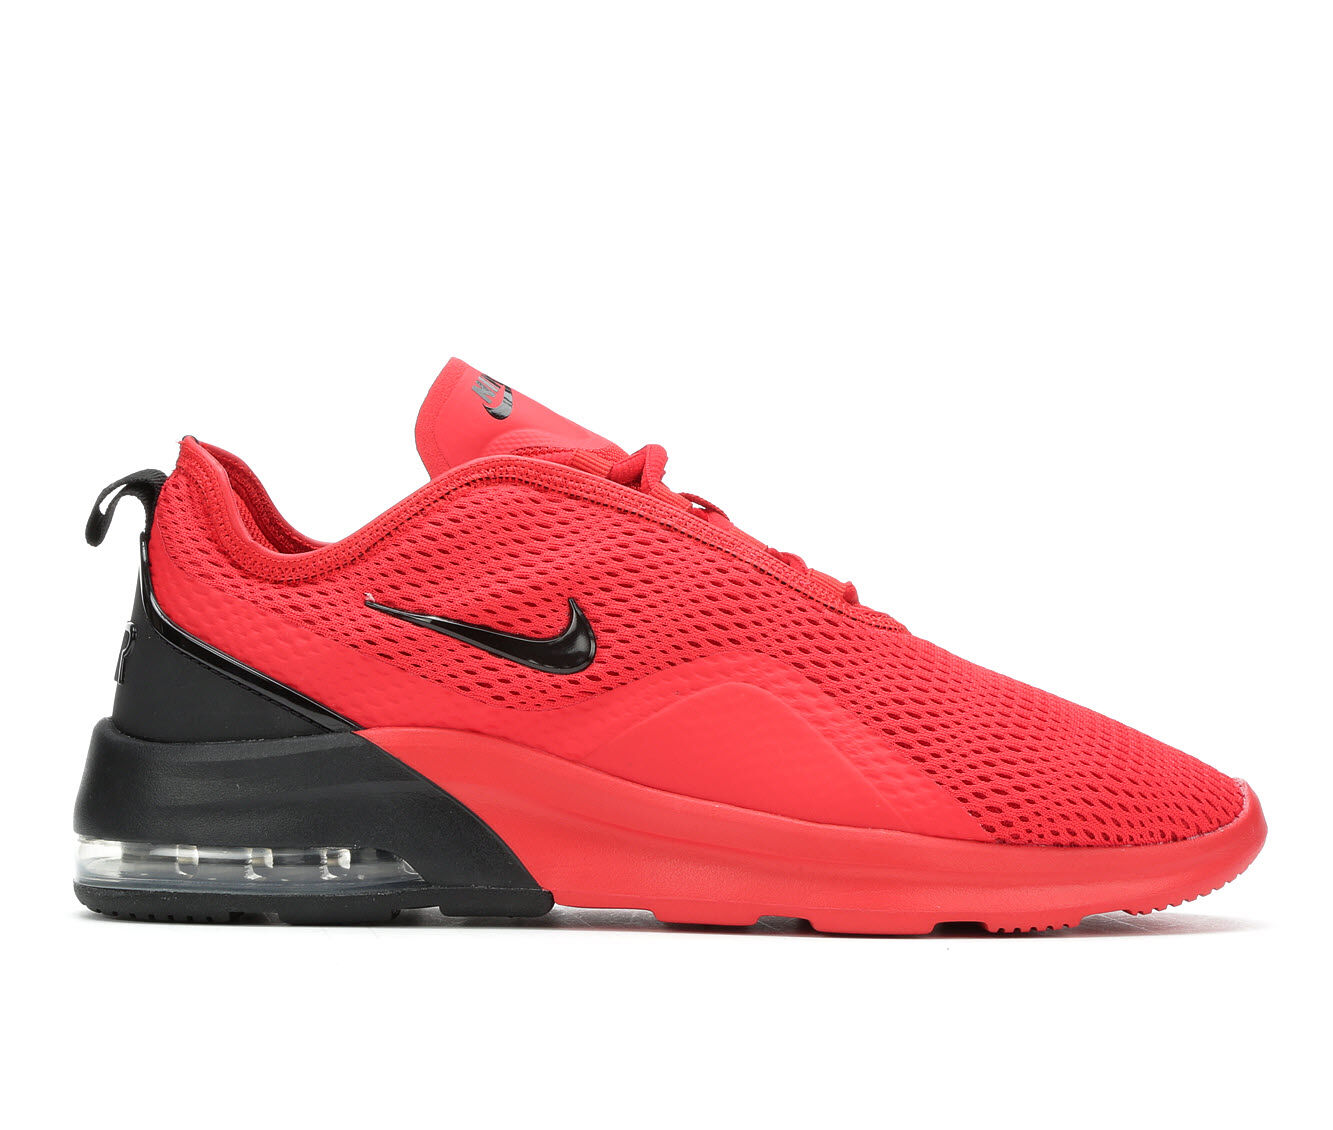 competitive price Men's Nike Air Max Motion 2 Sneakers Red/Blk/Wht 601